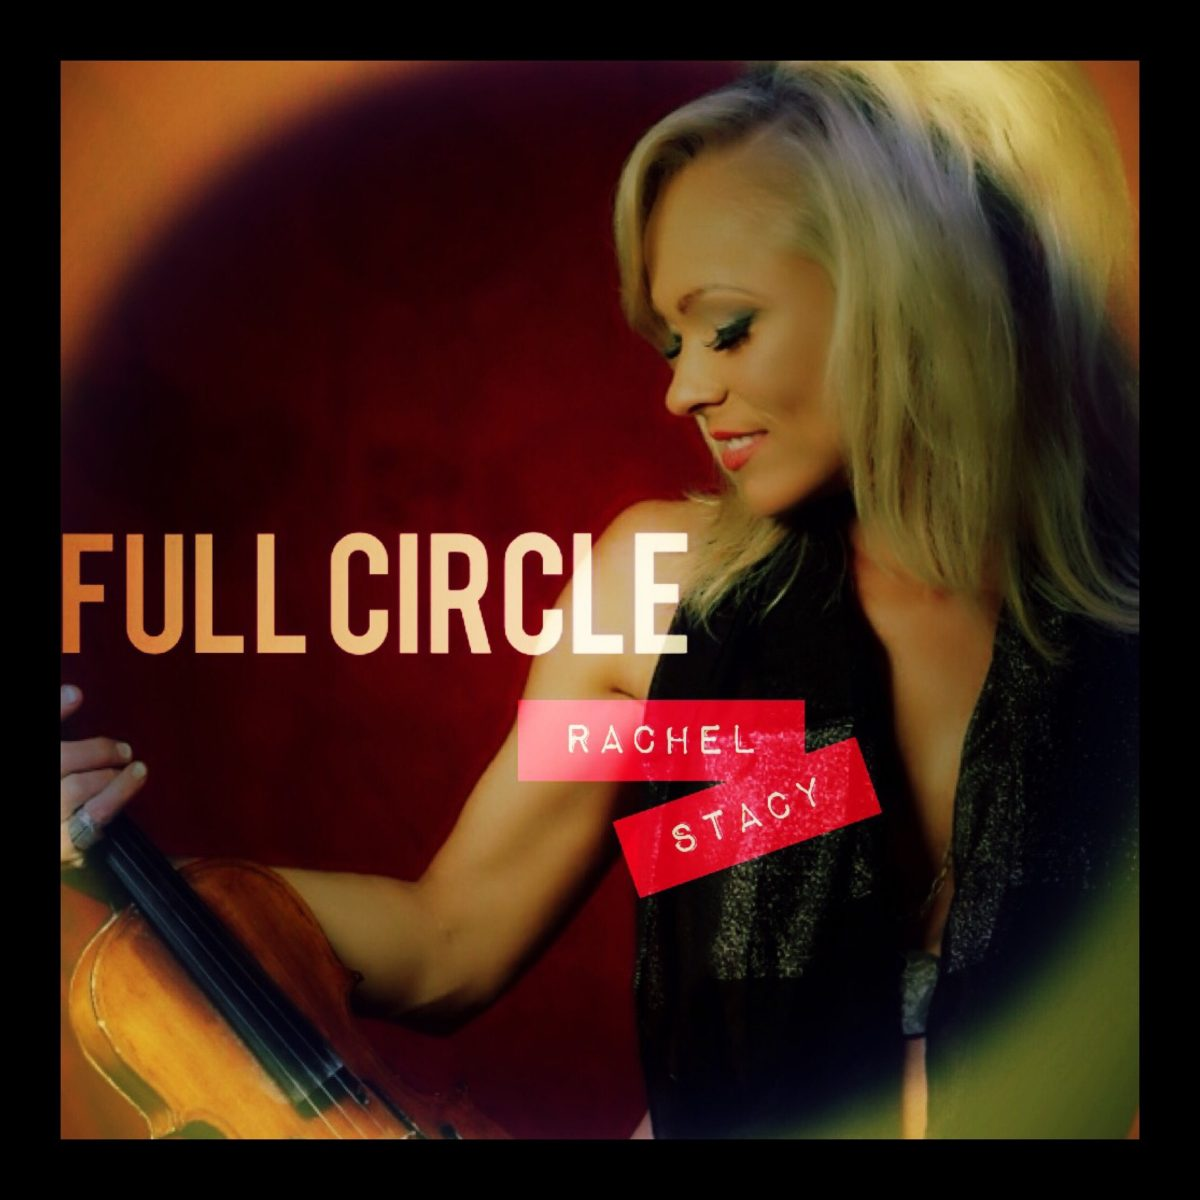 Full Circle by Rachel Stacy